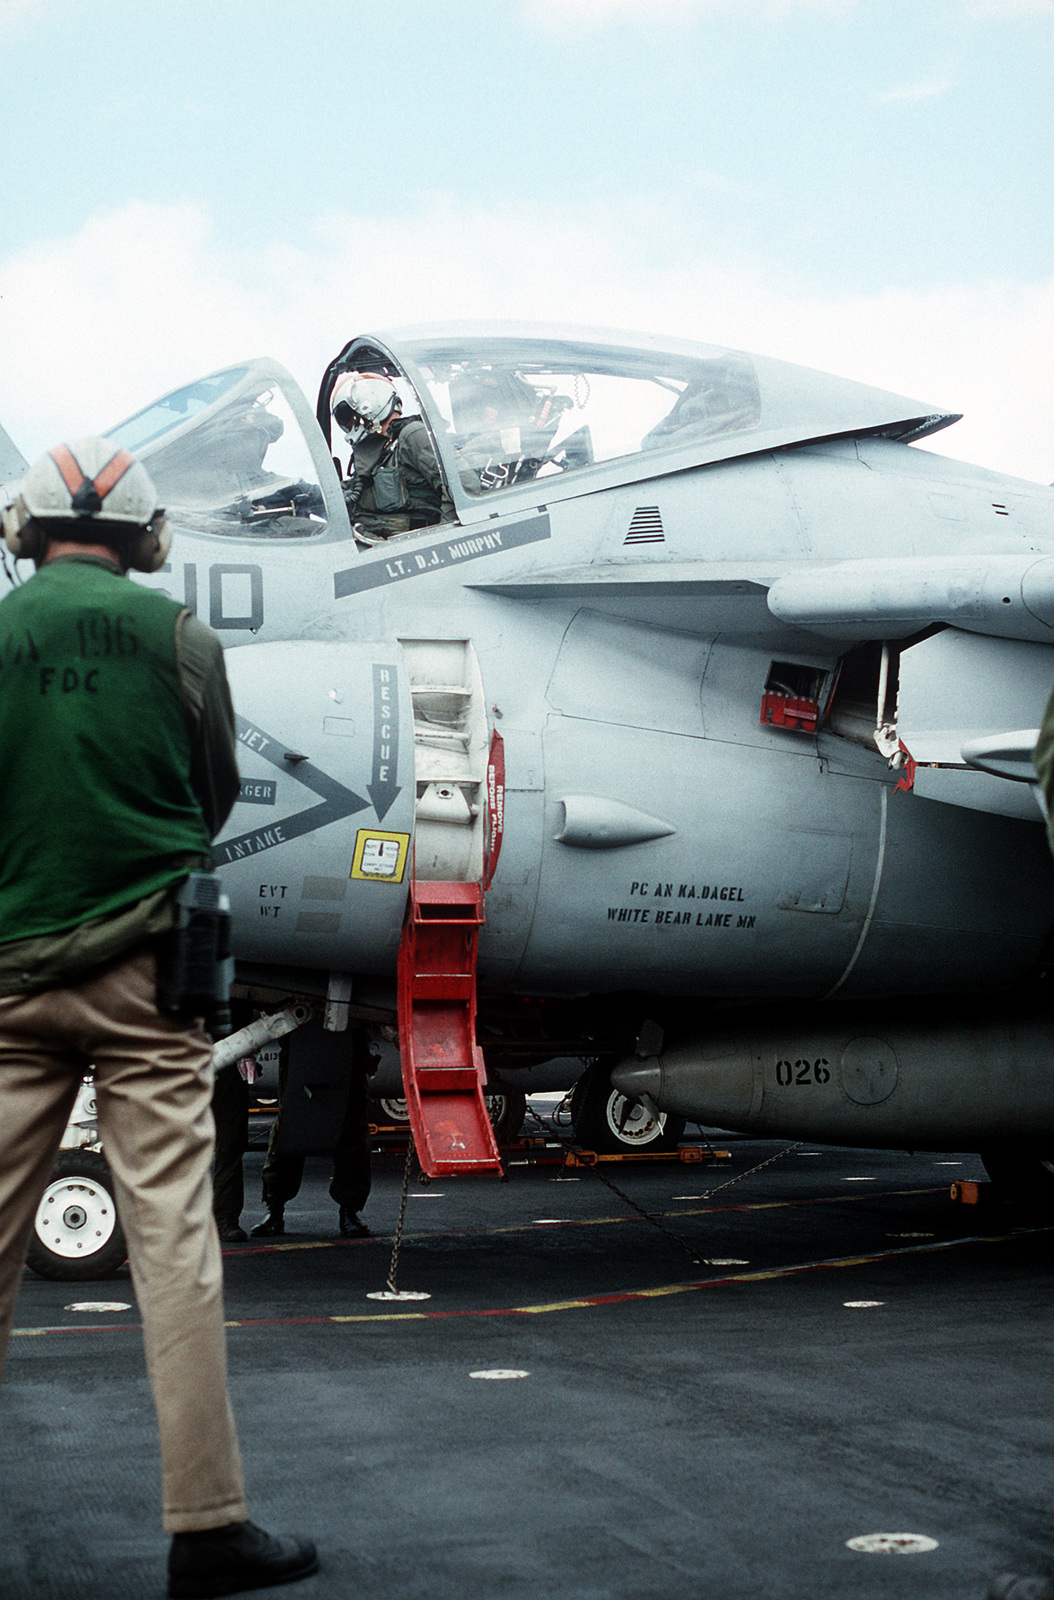 A catapult crew member stands by as the pilot closes the cockpit of an A-6E Intruder aircraft on the flight deck of the aircraft carrier USS Constellation (CV-64) during PACEX '89